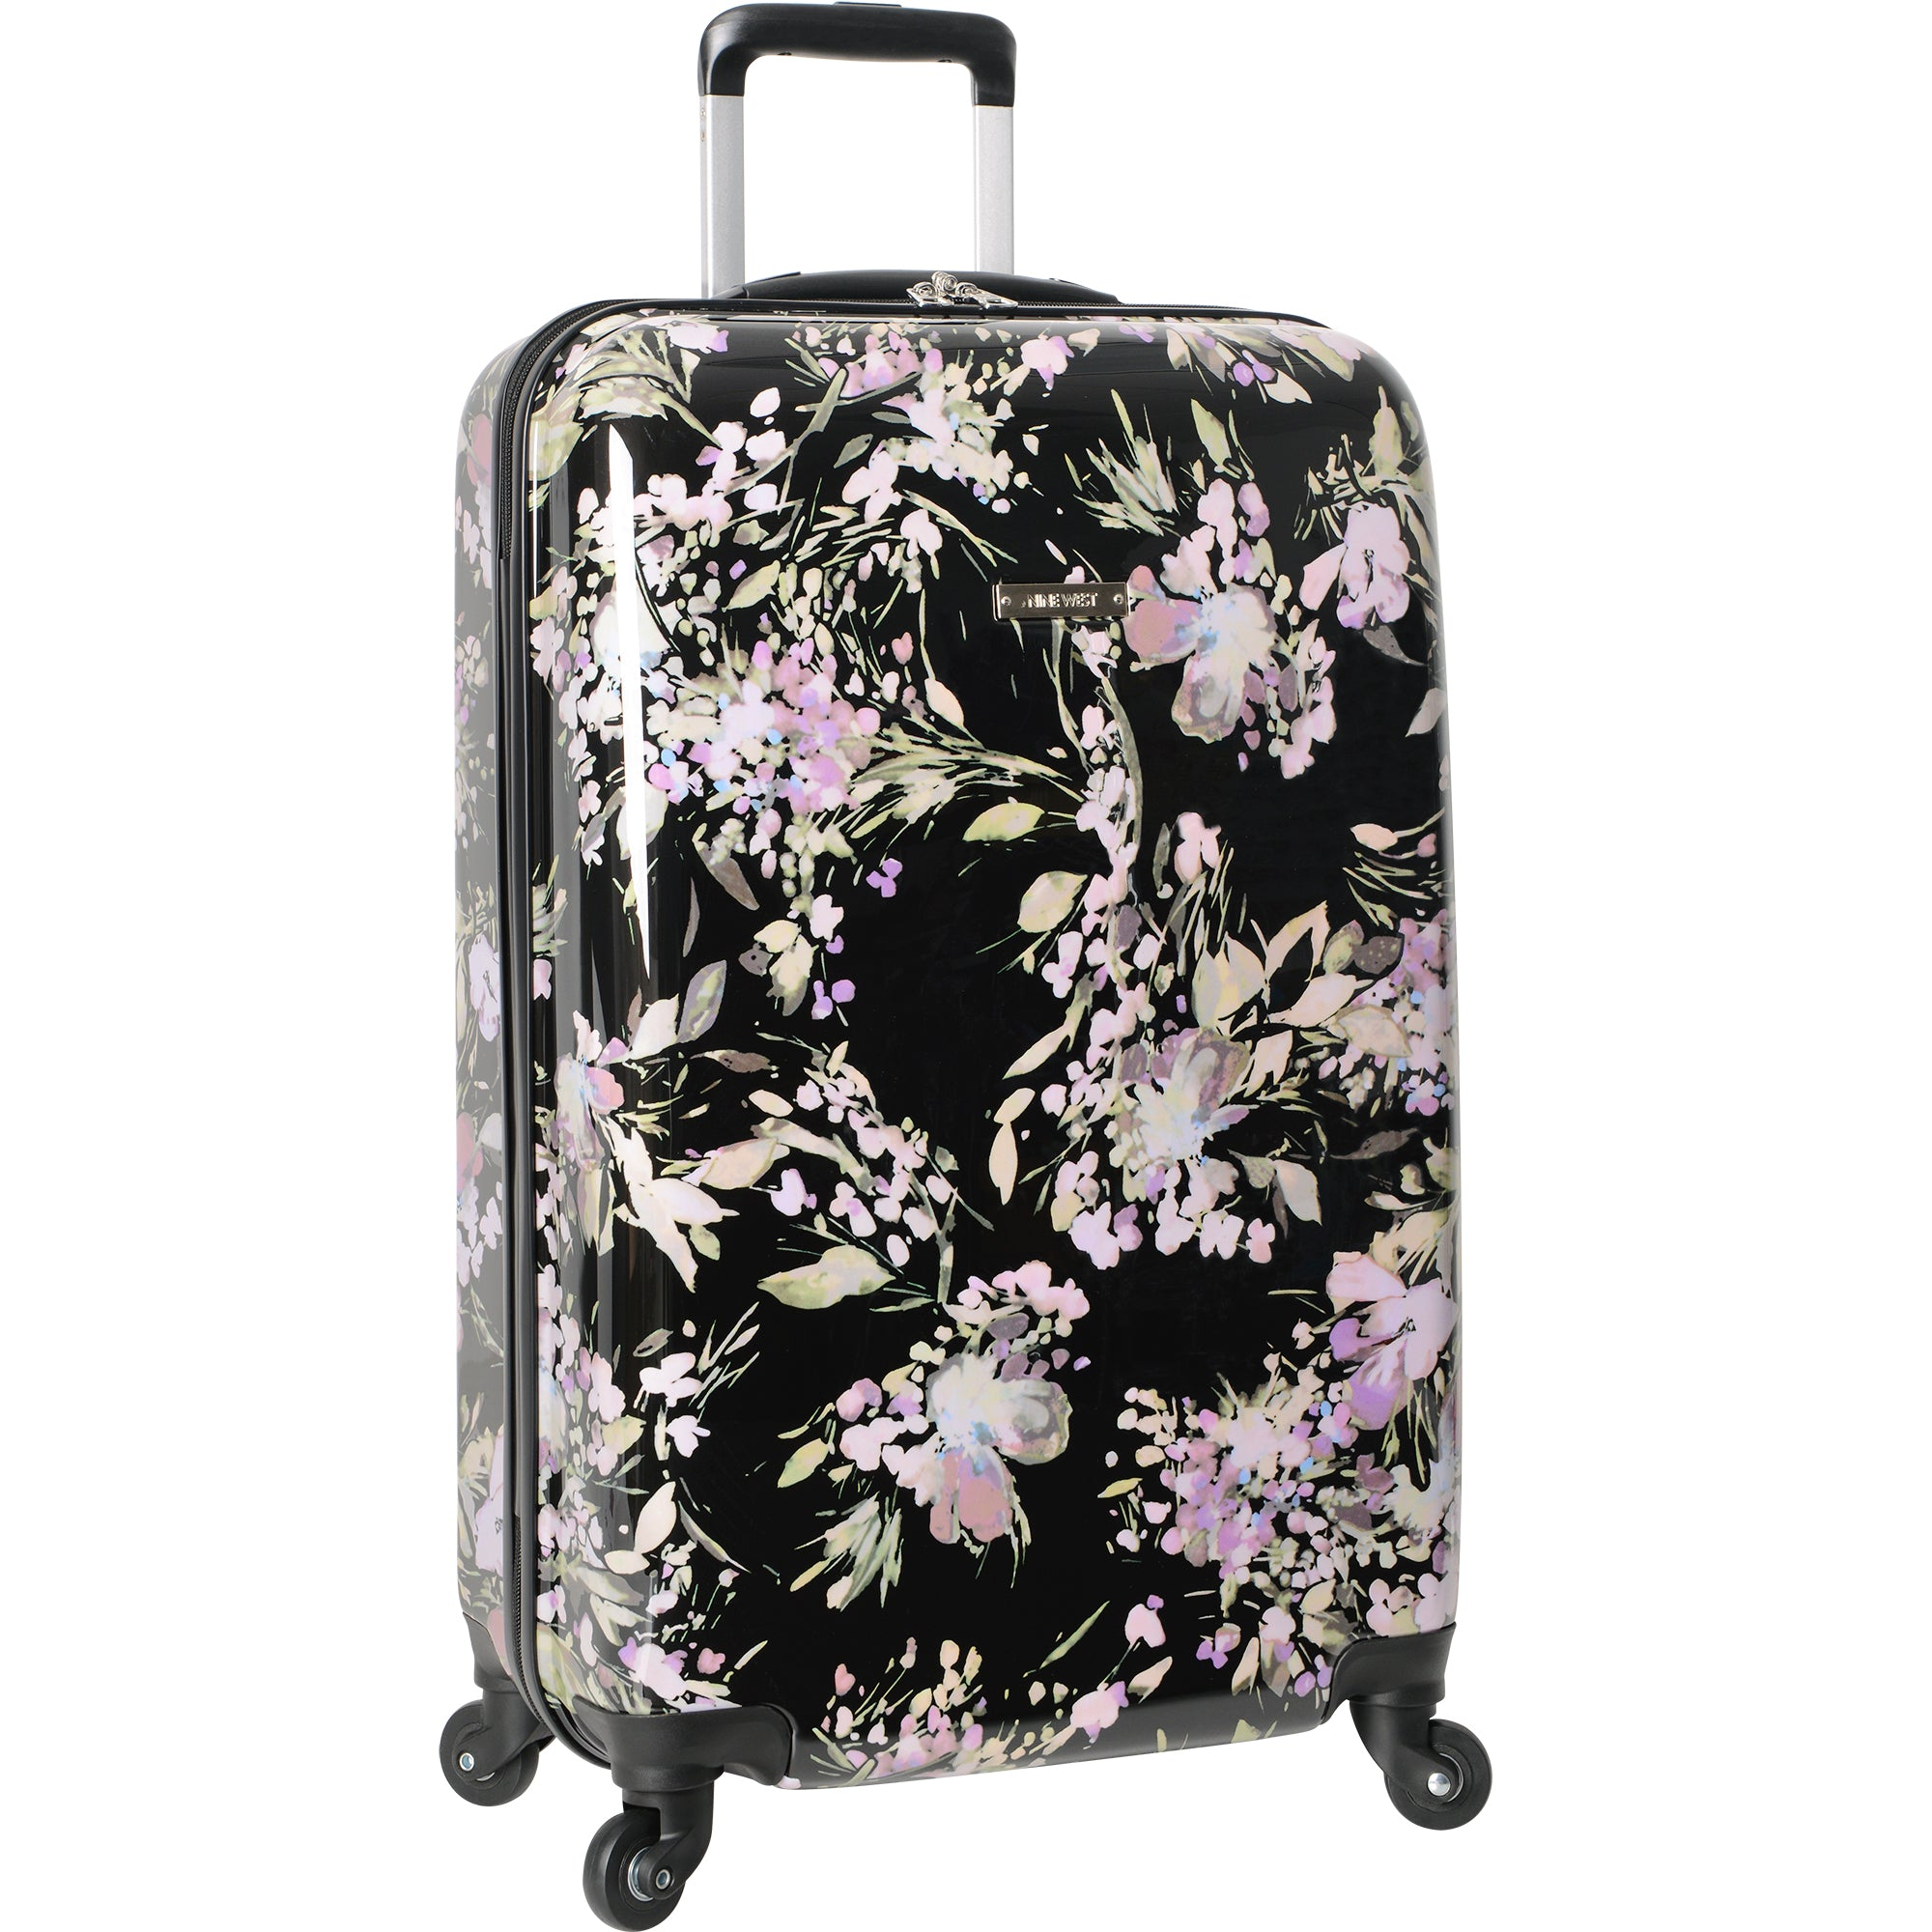 94b013f8f Nine West Outbound Flight 28 inch Hardside Spinner Suitcase. Group Orange  Tropic · Group Lily Festival ...